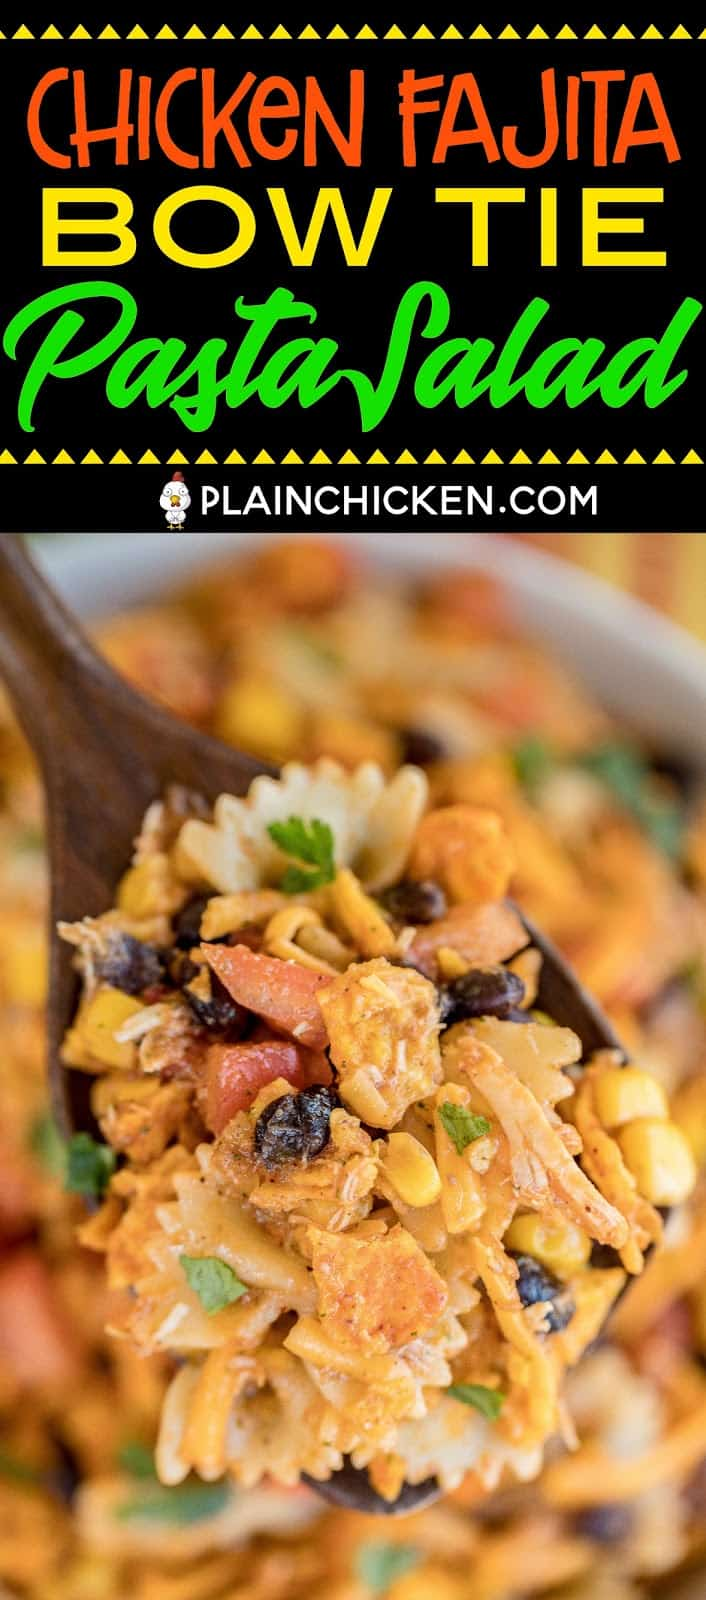 Chicken Fajita Bow Tie Pasta Salad - crazy good!! Chicken and bow tie pasta tossed with lime juice, cumin, chili powder, cilantro, olive oil, corn, tomatoes, black beans, salsa, cheese and Doritos! Can make without the chicken and serve as a side dish. Great for summer potlucks! #pastasalad #mexican #chickenrecipe #easyrecipe #nobakerecipe